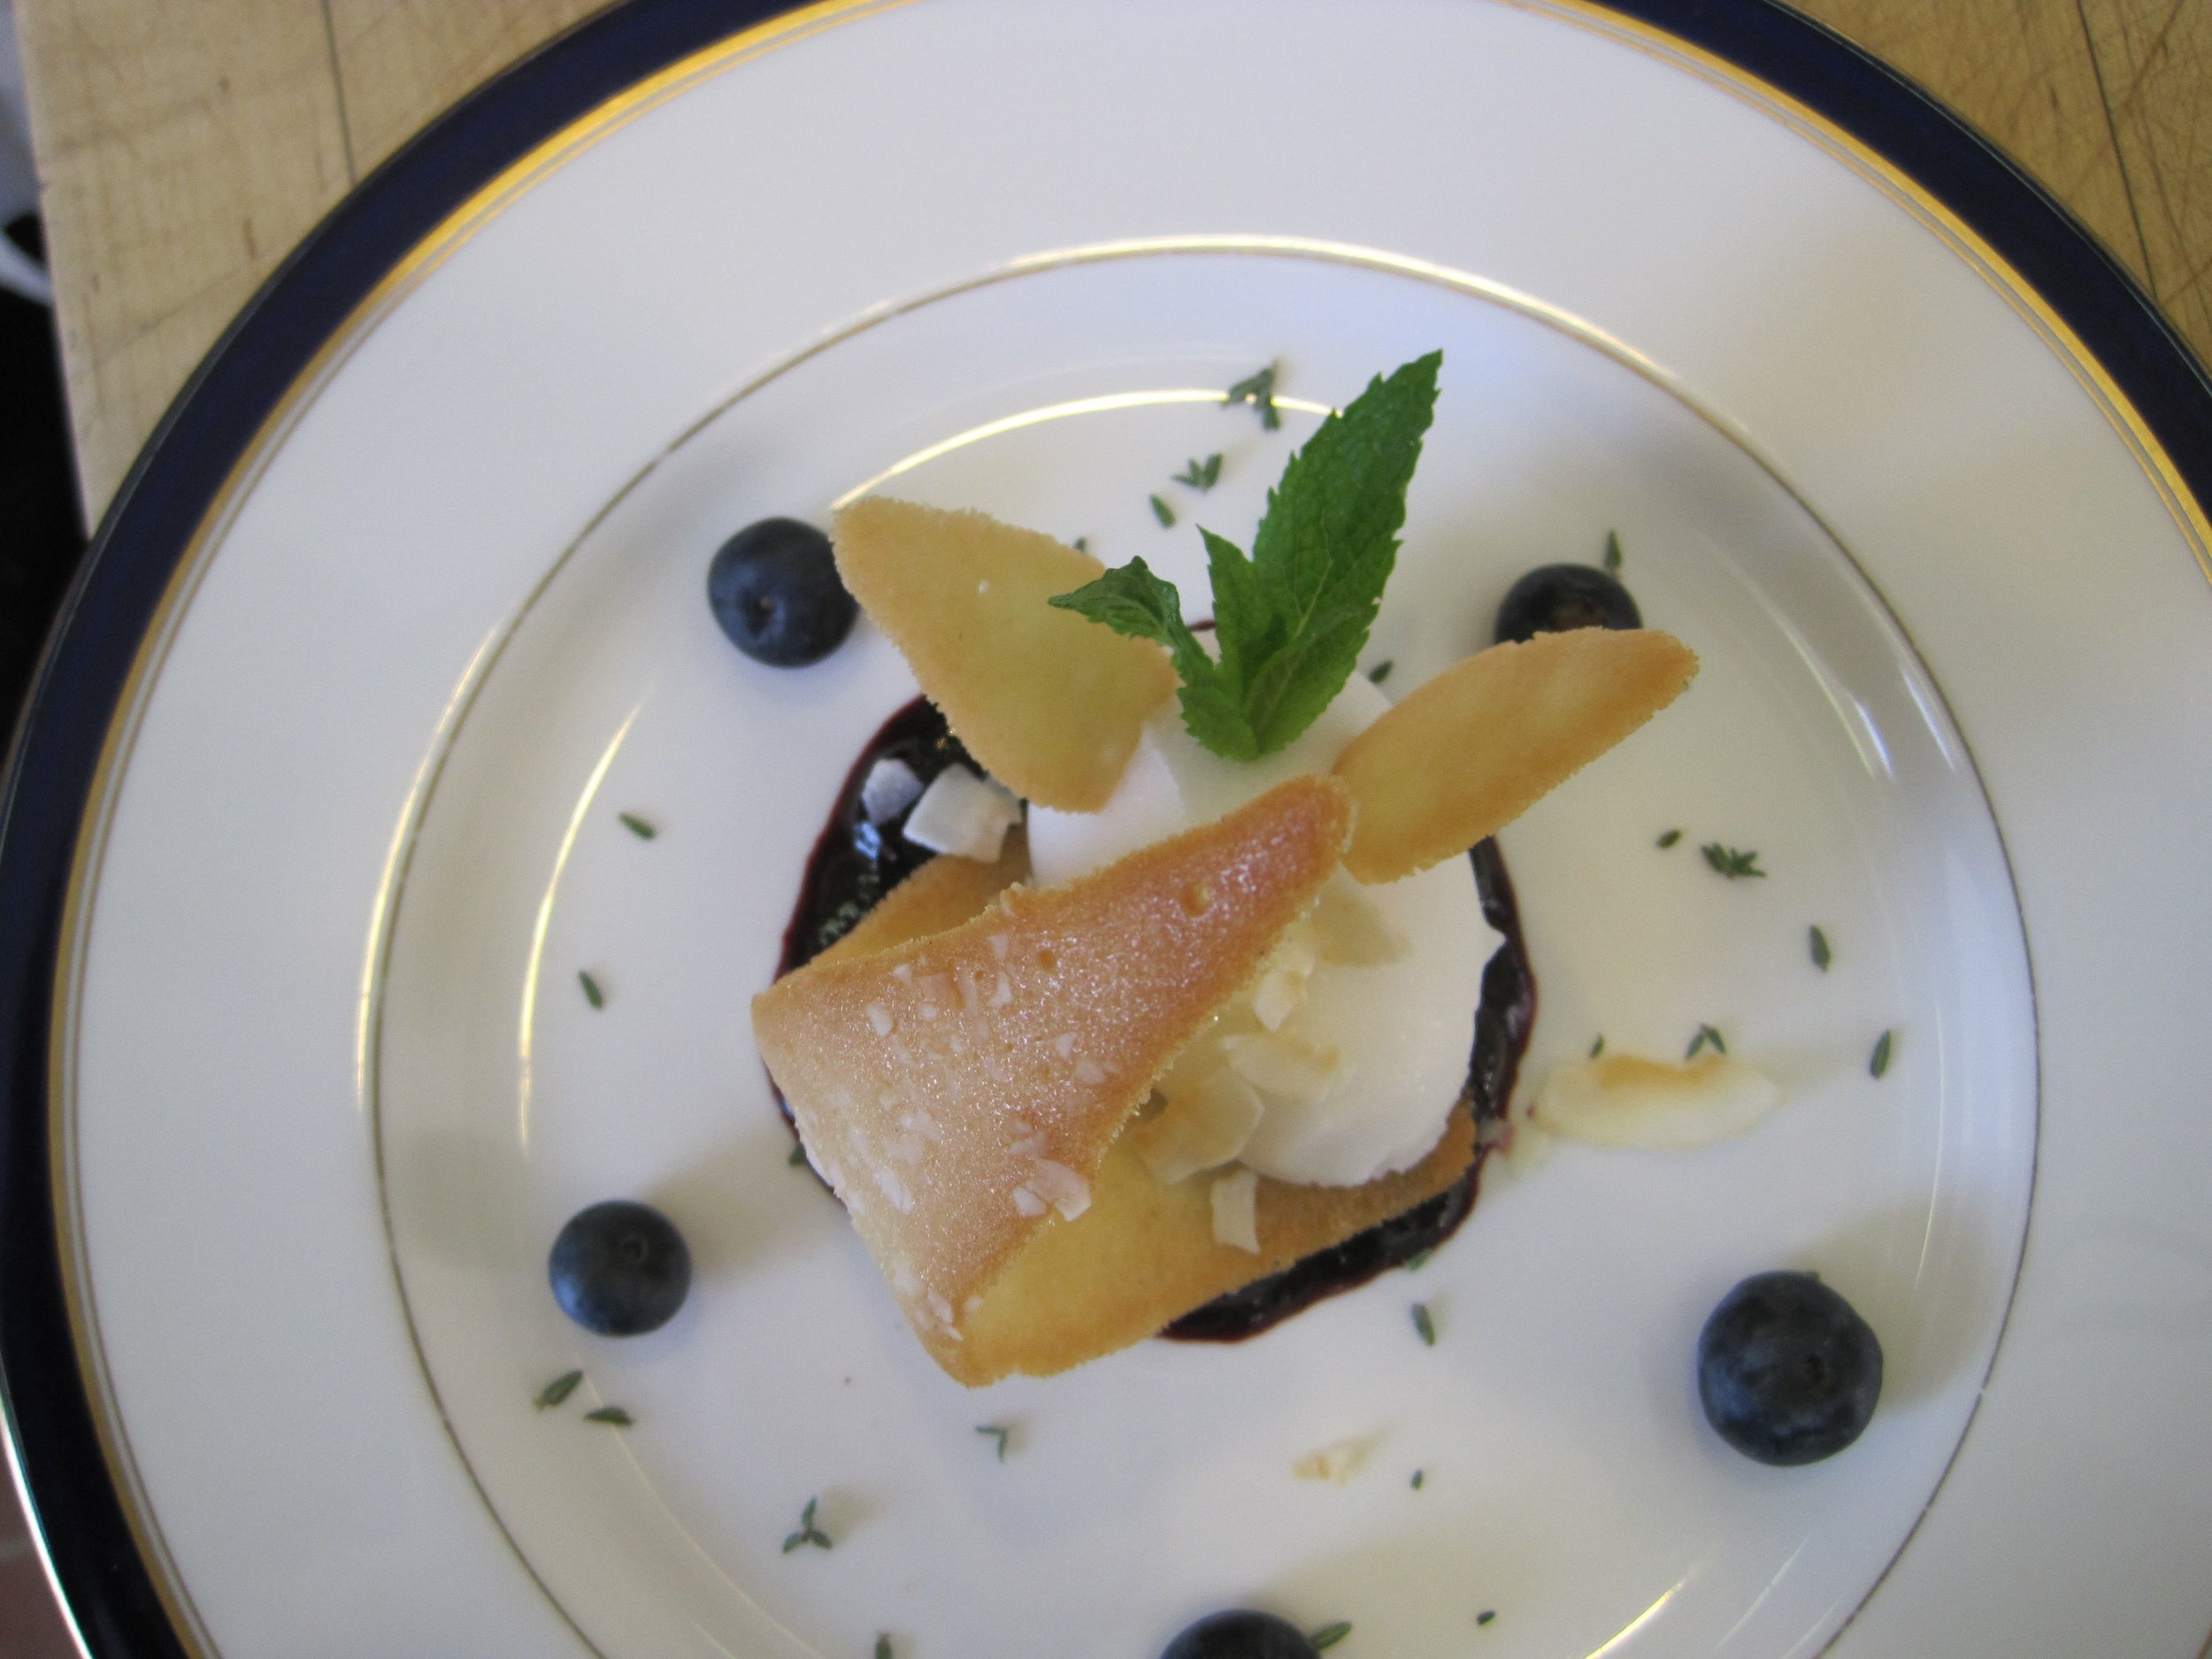 Blueberry Tart w Limoncello Ice Cream